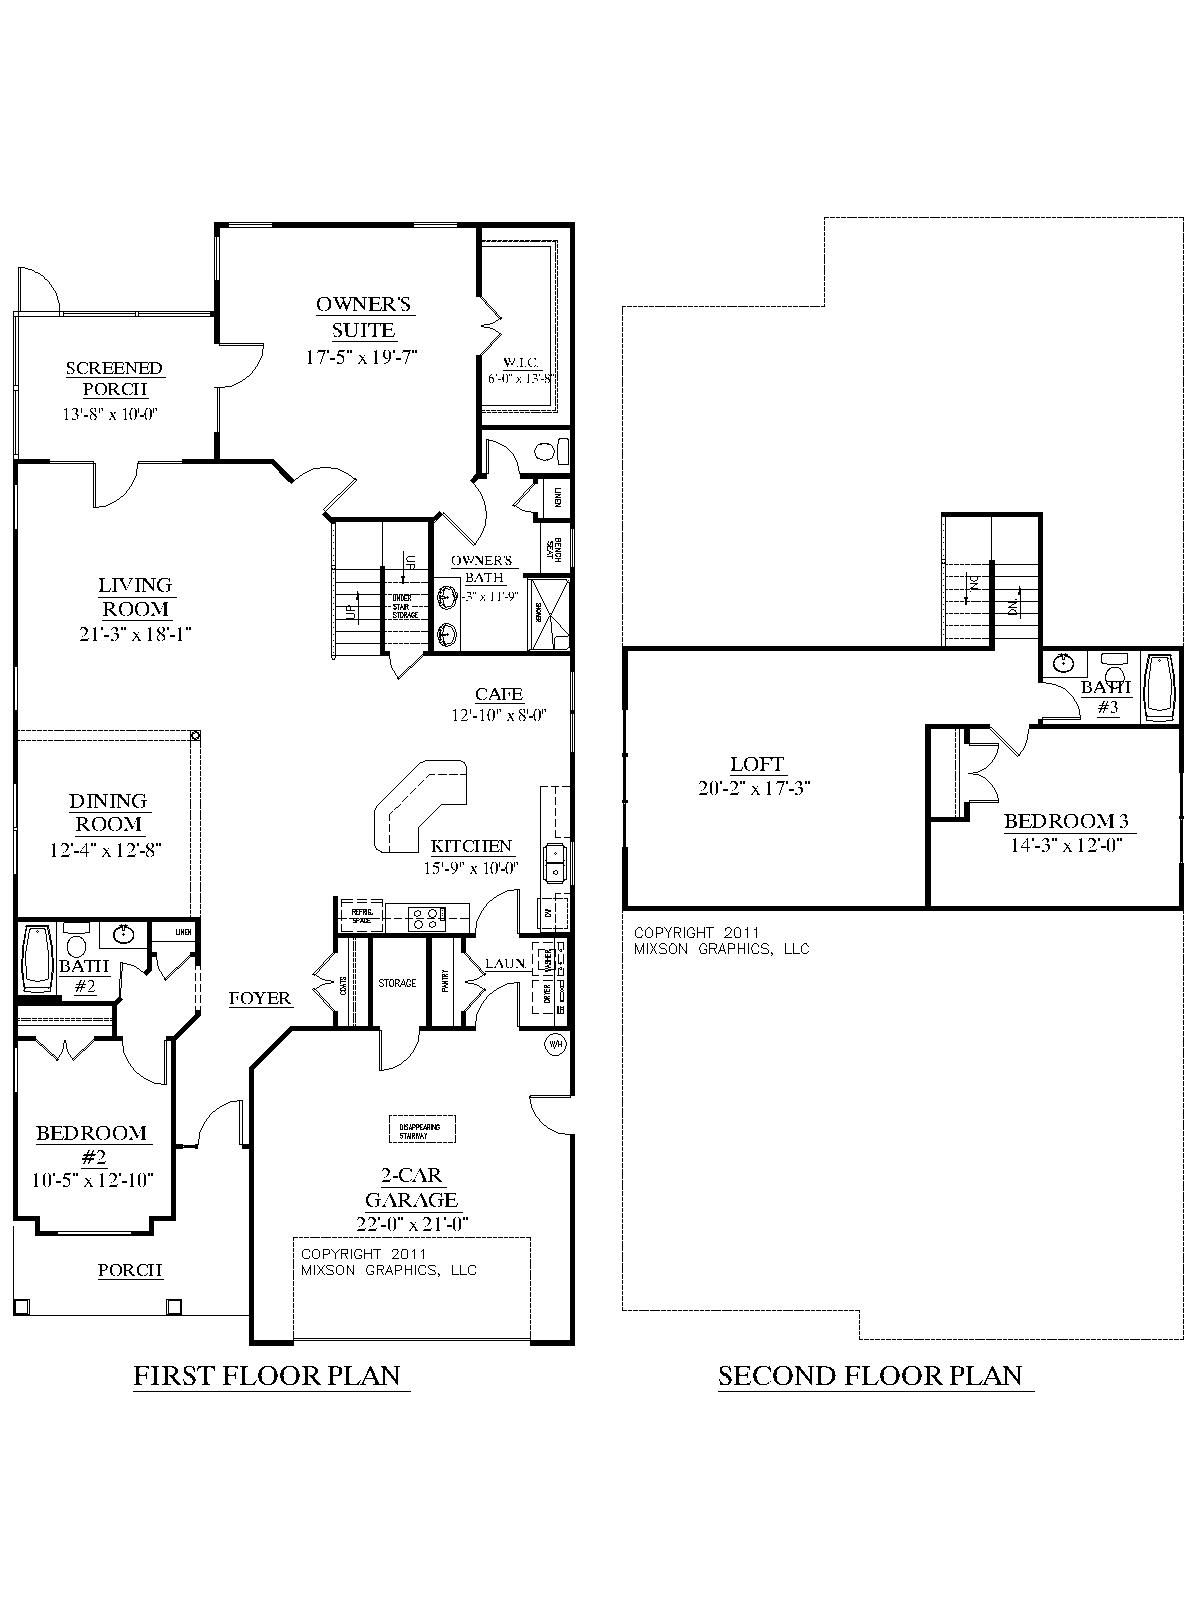 House plan 2755 woodbridge floor plan traditional 1 1 2 for Traditional open floor plans